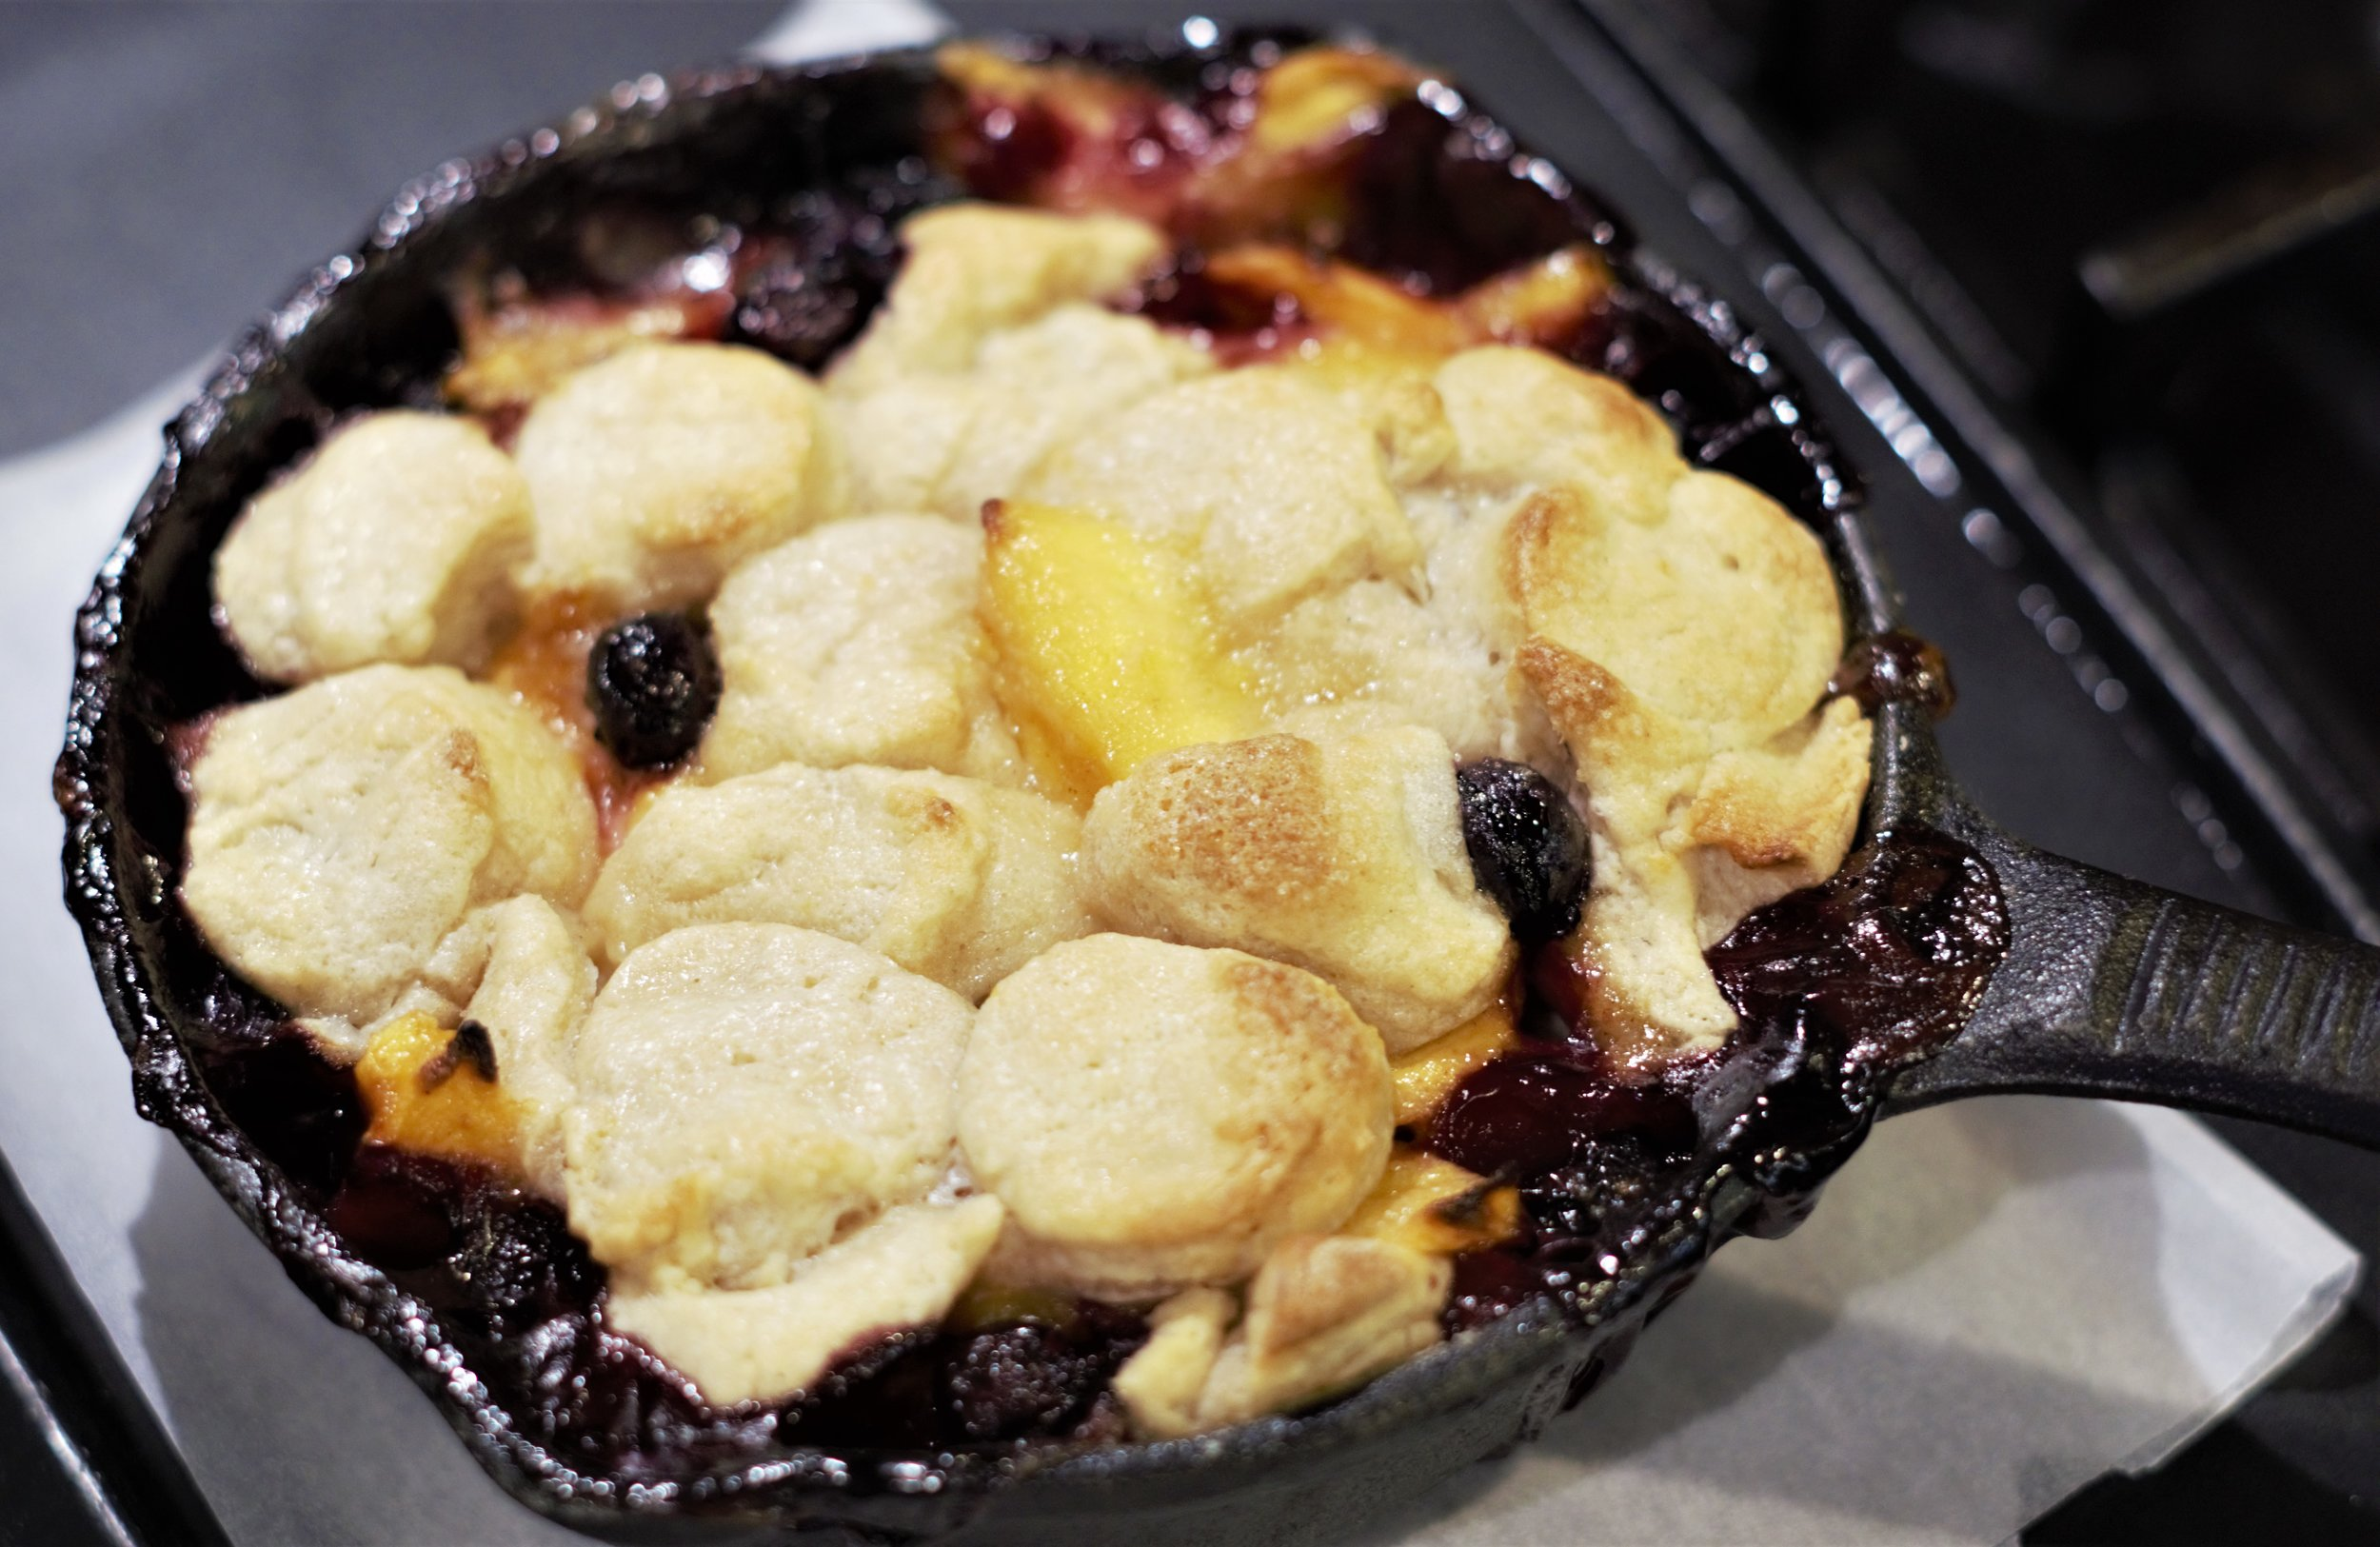 Cobbler on the grill in a mini skillet